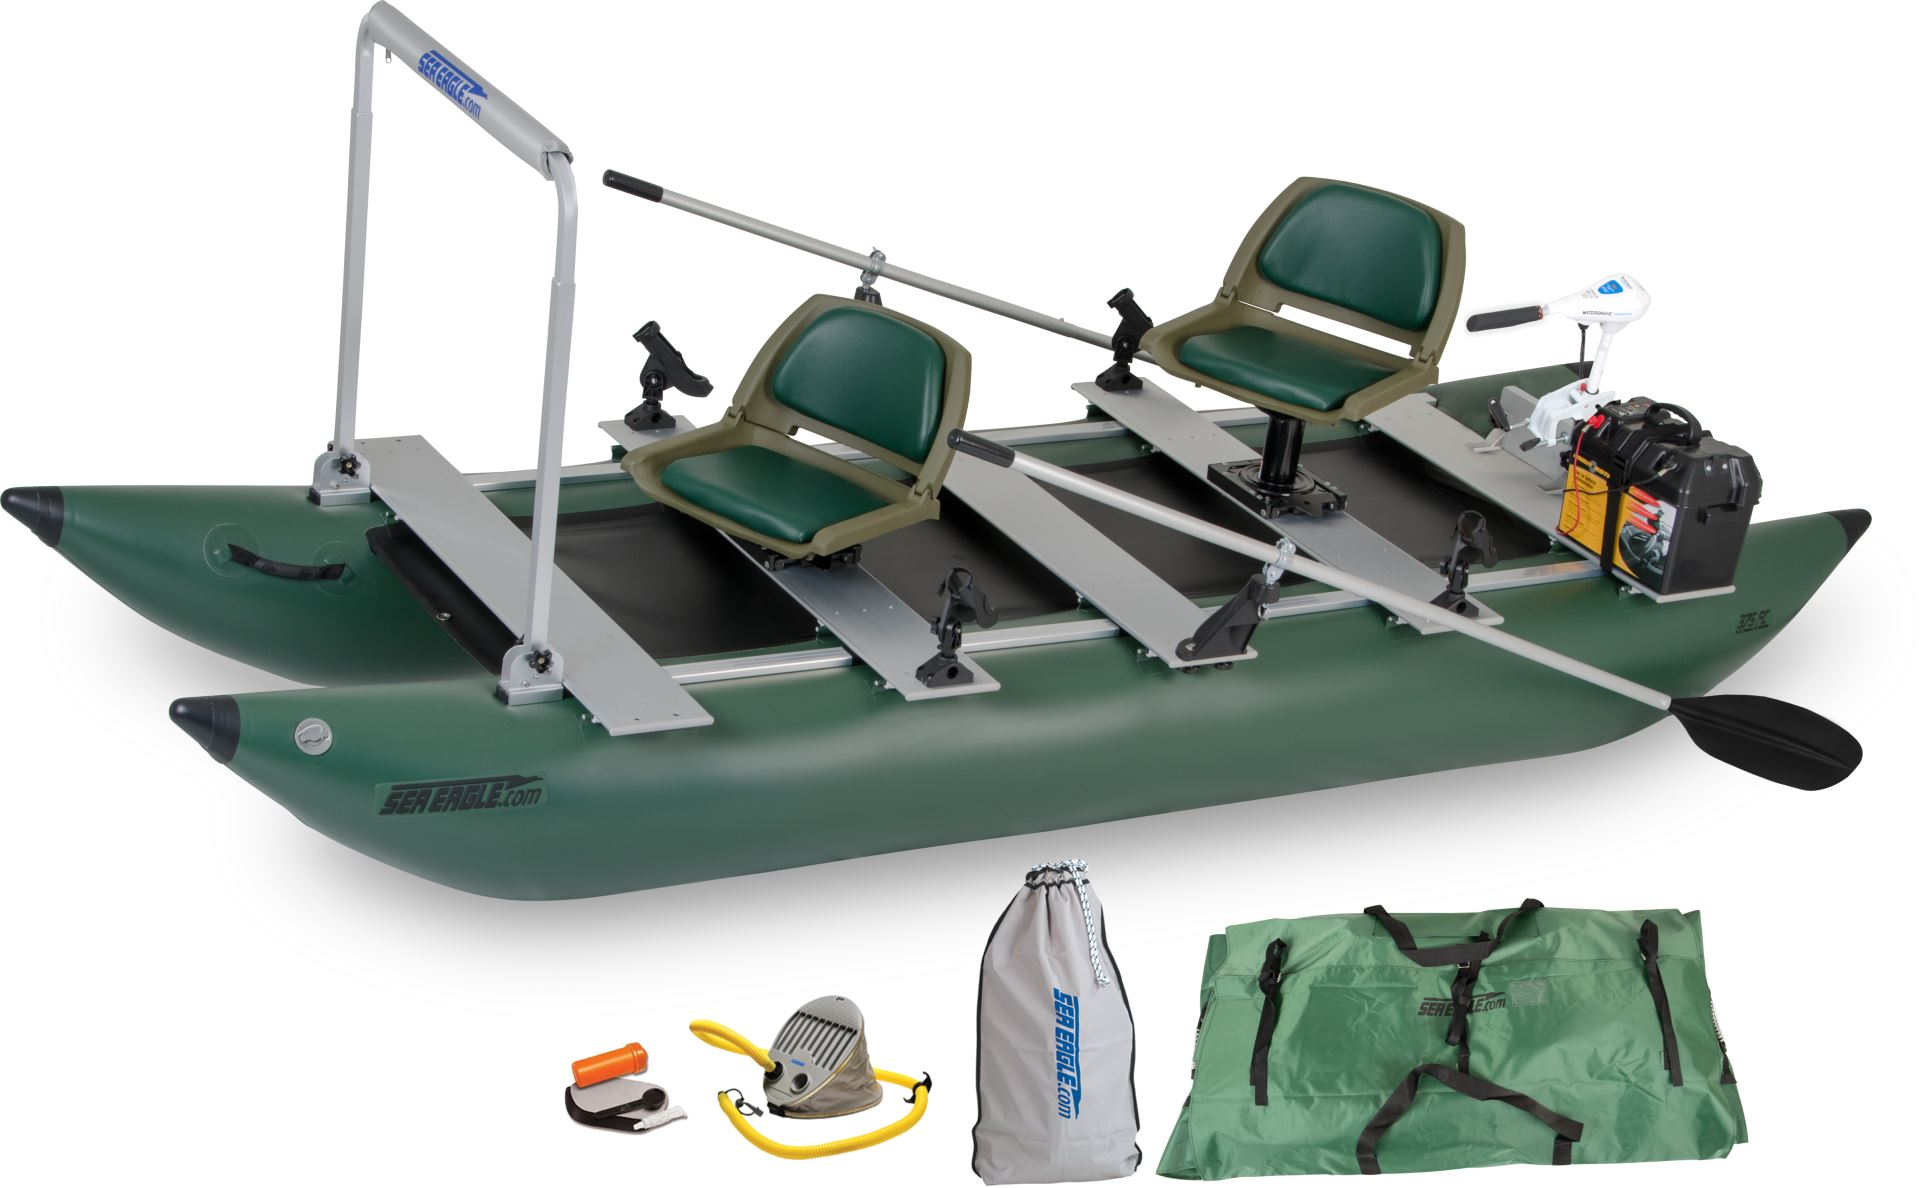 Sea eagle 375fc 2 person inflatable fishing boats package for 4 person fishing boat